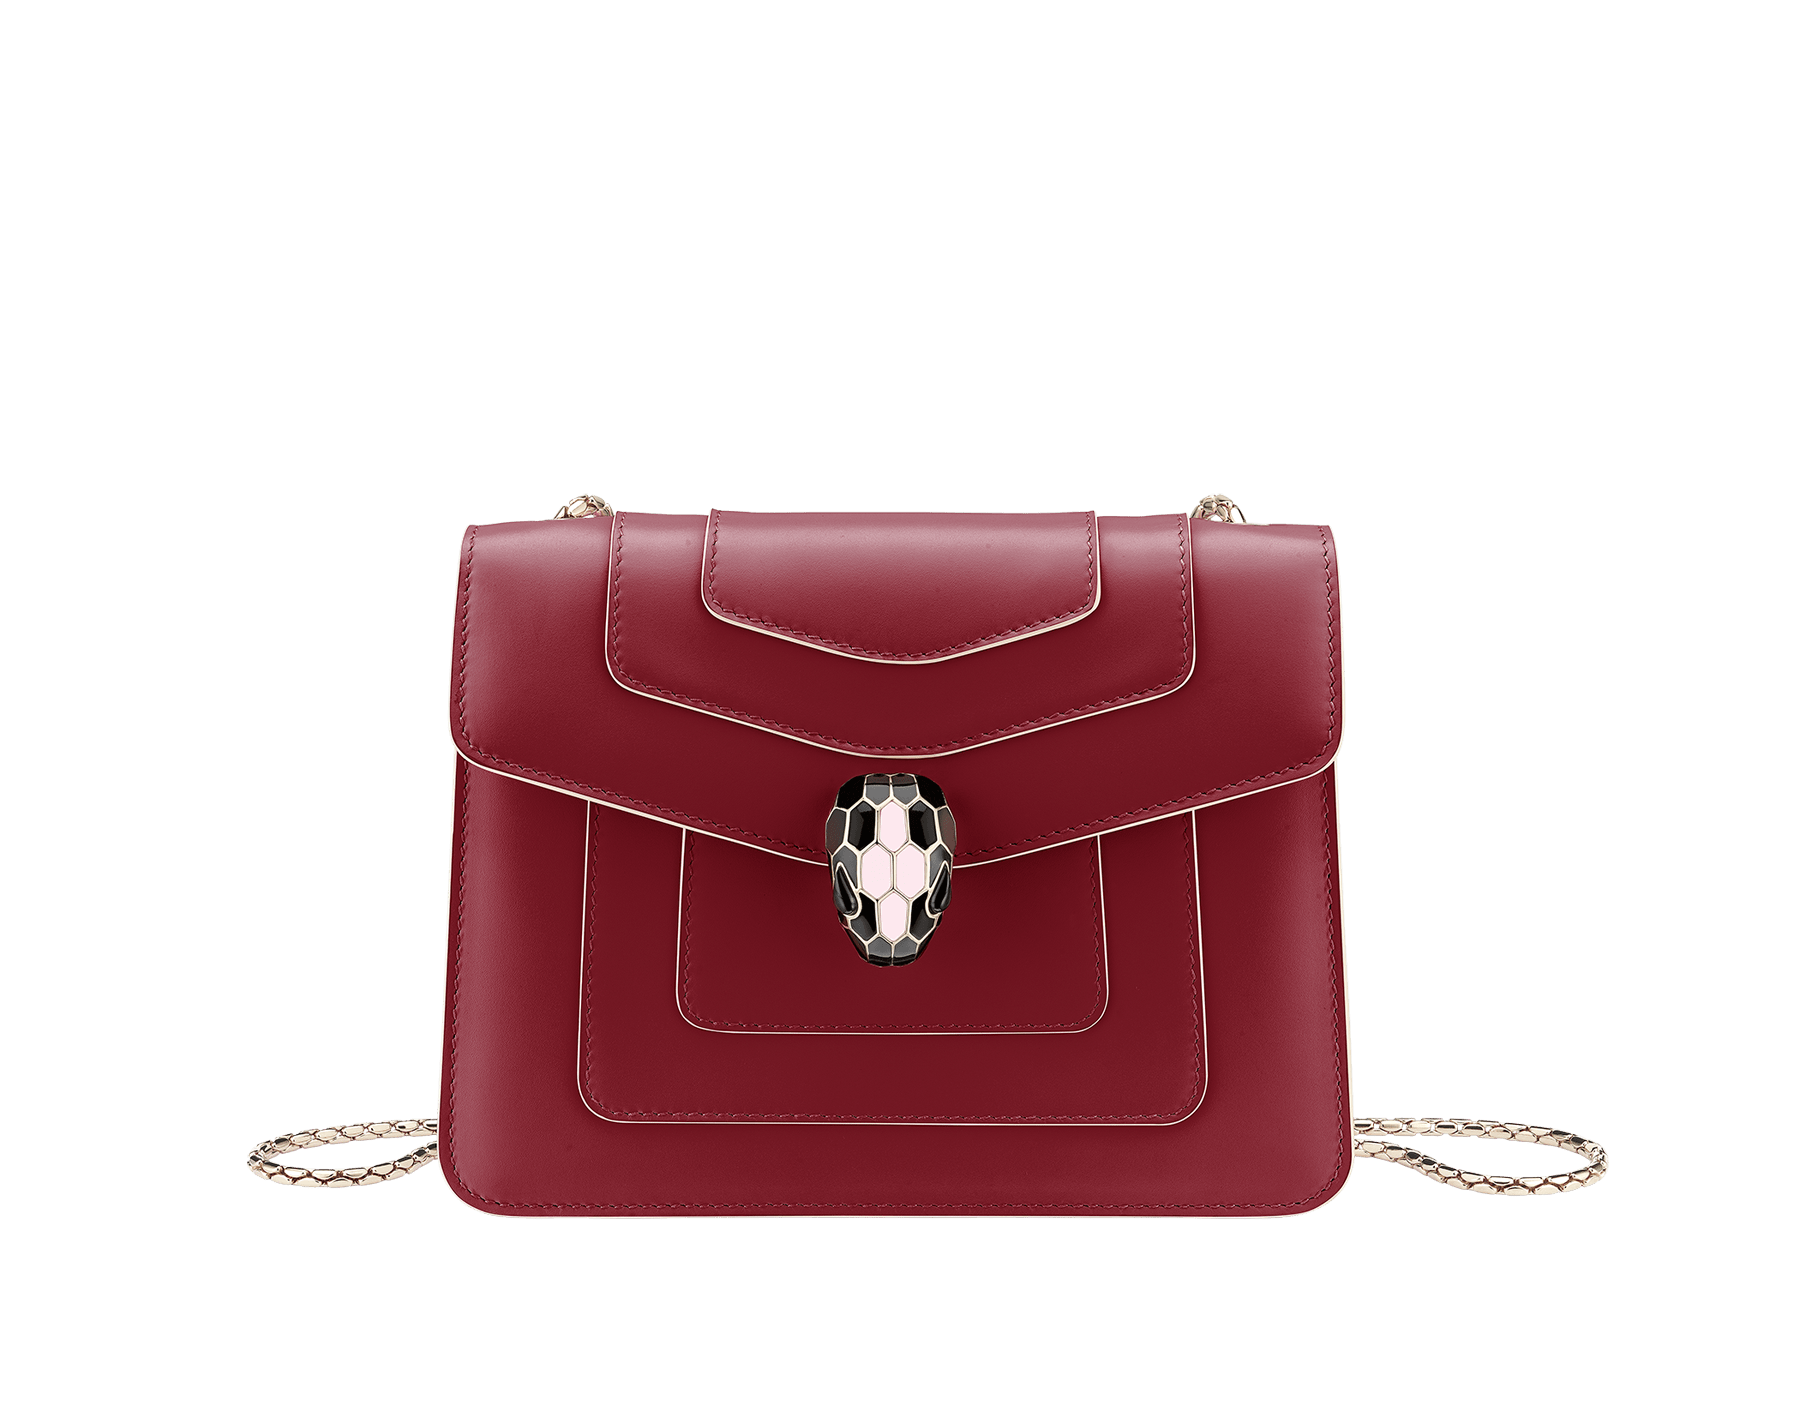 Serpenti Forever crossbody bag in Roman garnet calf leather, with rosa di francia calf leather sides. Iconic snakehead closure in light gold plated brass embellished rosa di francia and black enamel and black onyx eyes . 289035 image 3